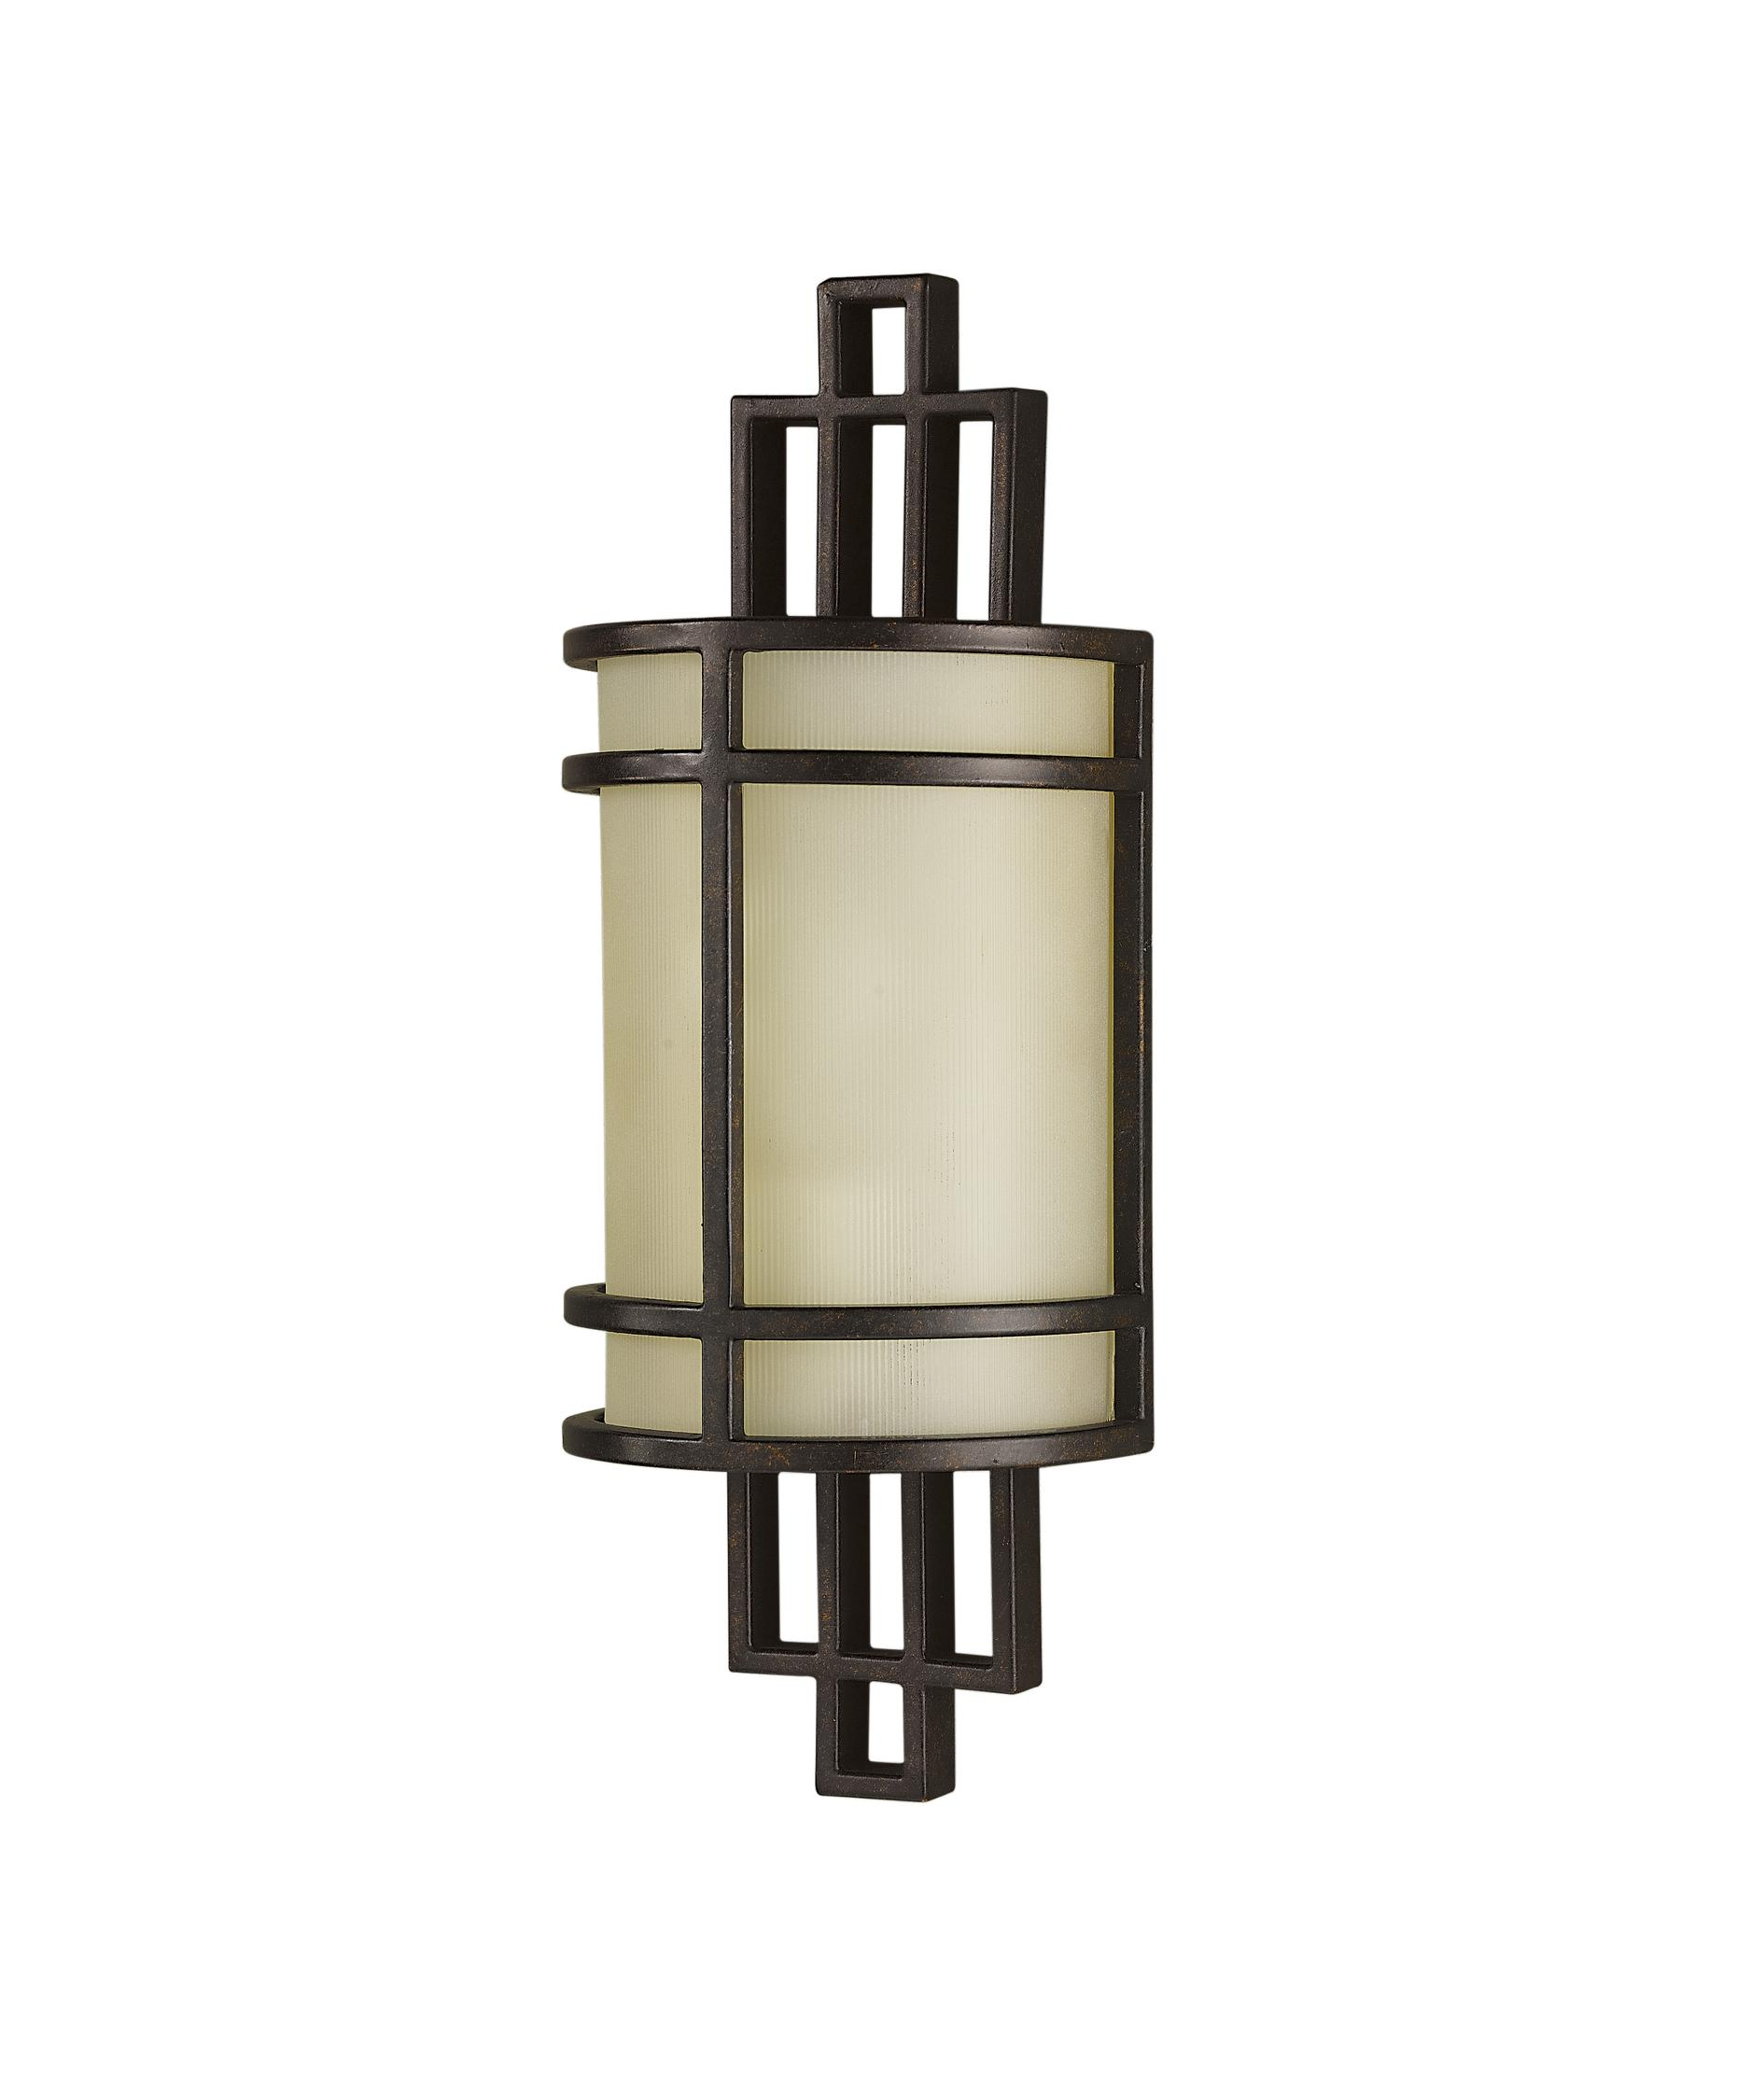 Lamp chandelier feiss chandeliers murray feiss ceiling fan 897f feiss chandeliers murray feiss ceiling fan 897f arubaitofo Image collections